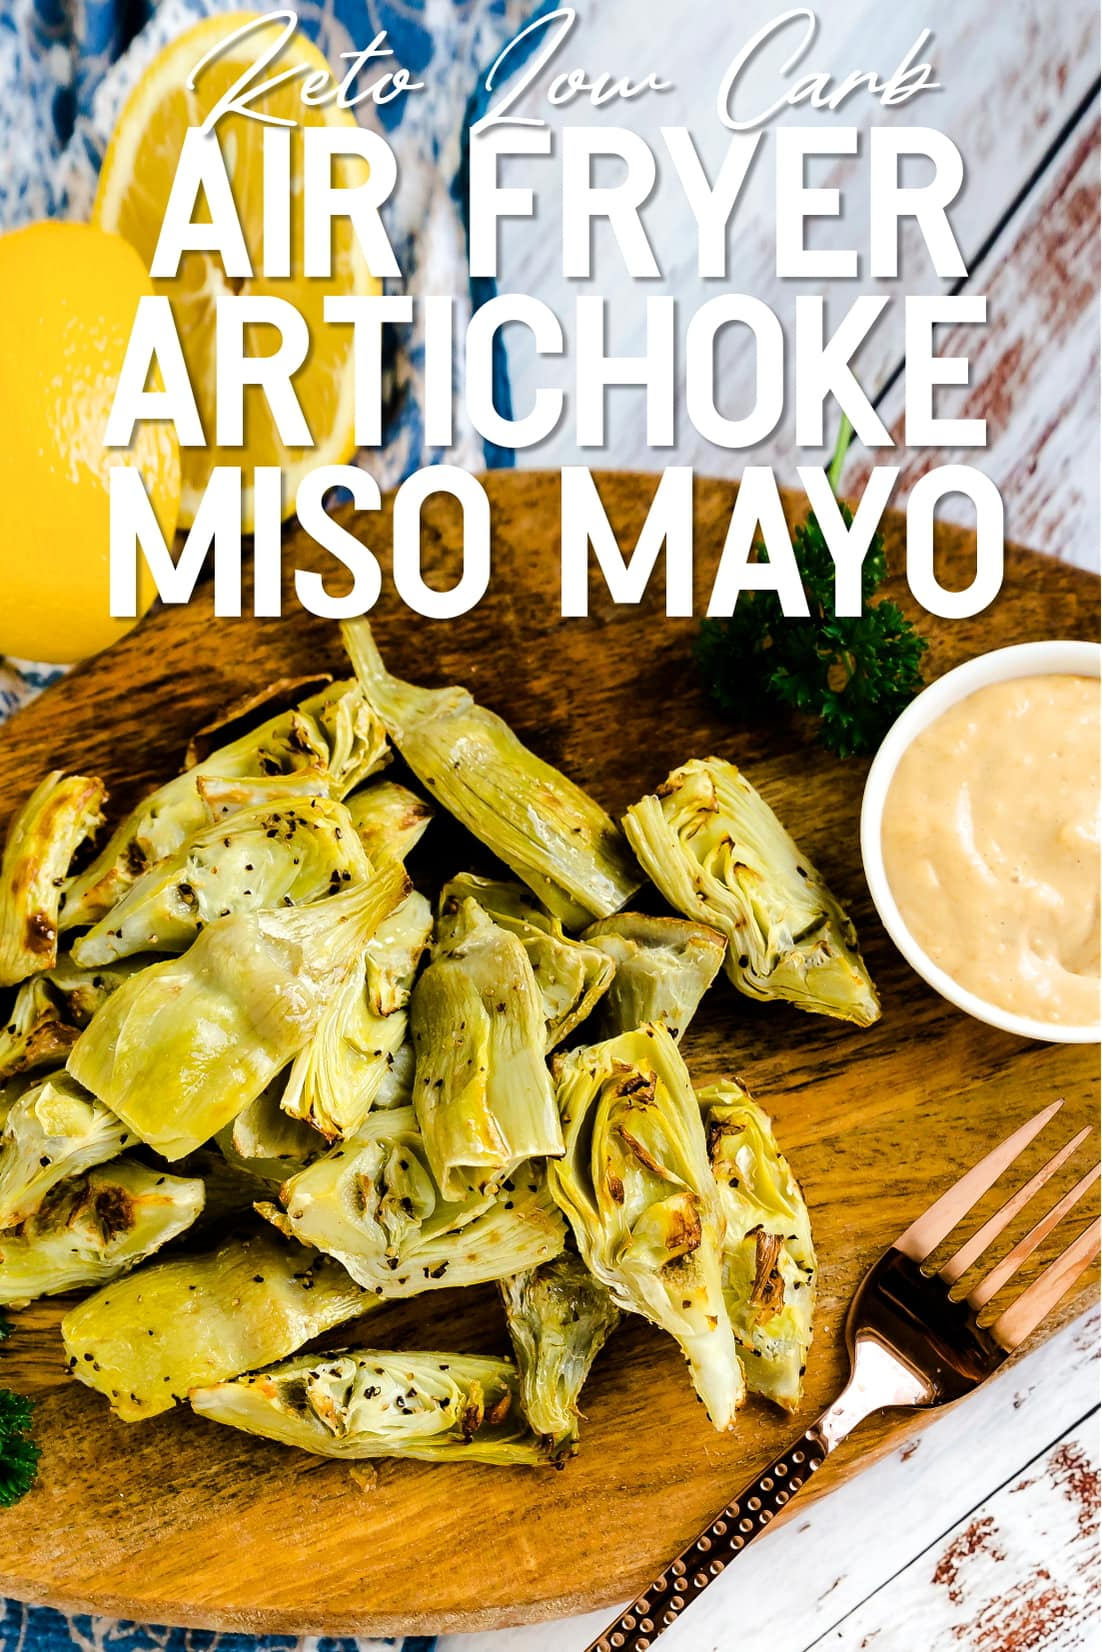 Air Fryer Artichoke served with garlic miso mayo sauce on a wooden plank